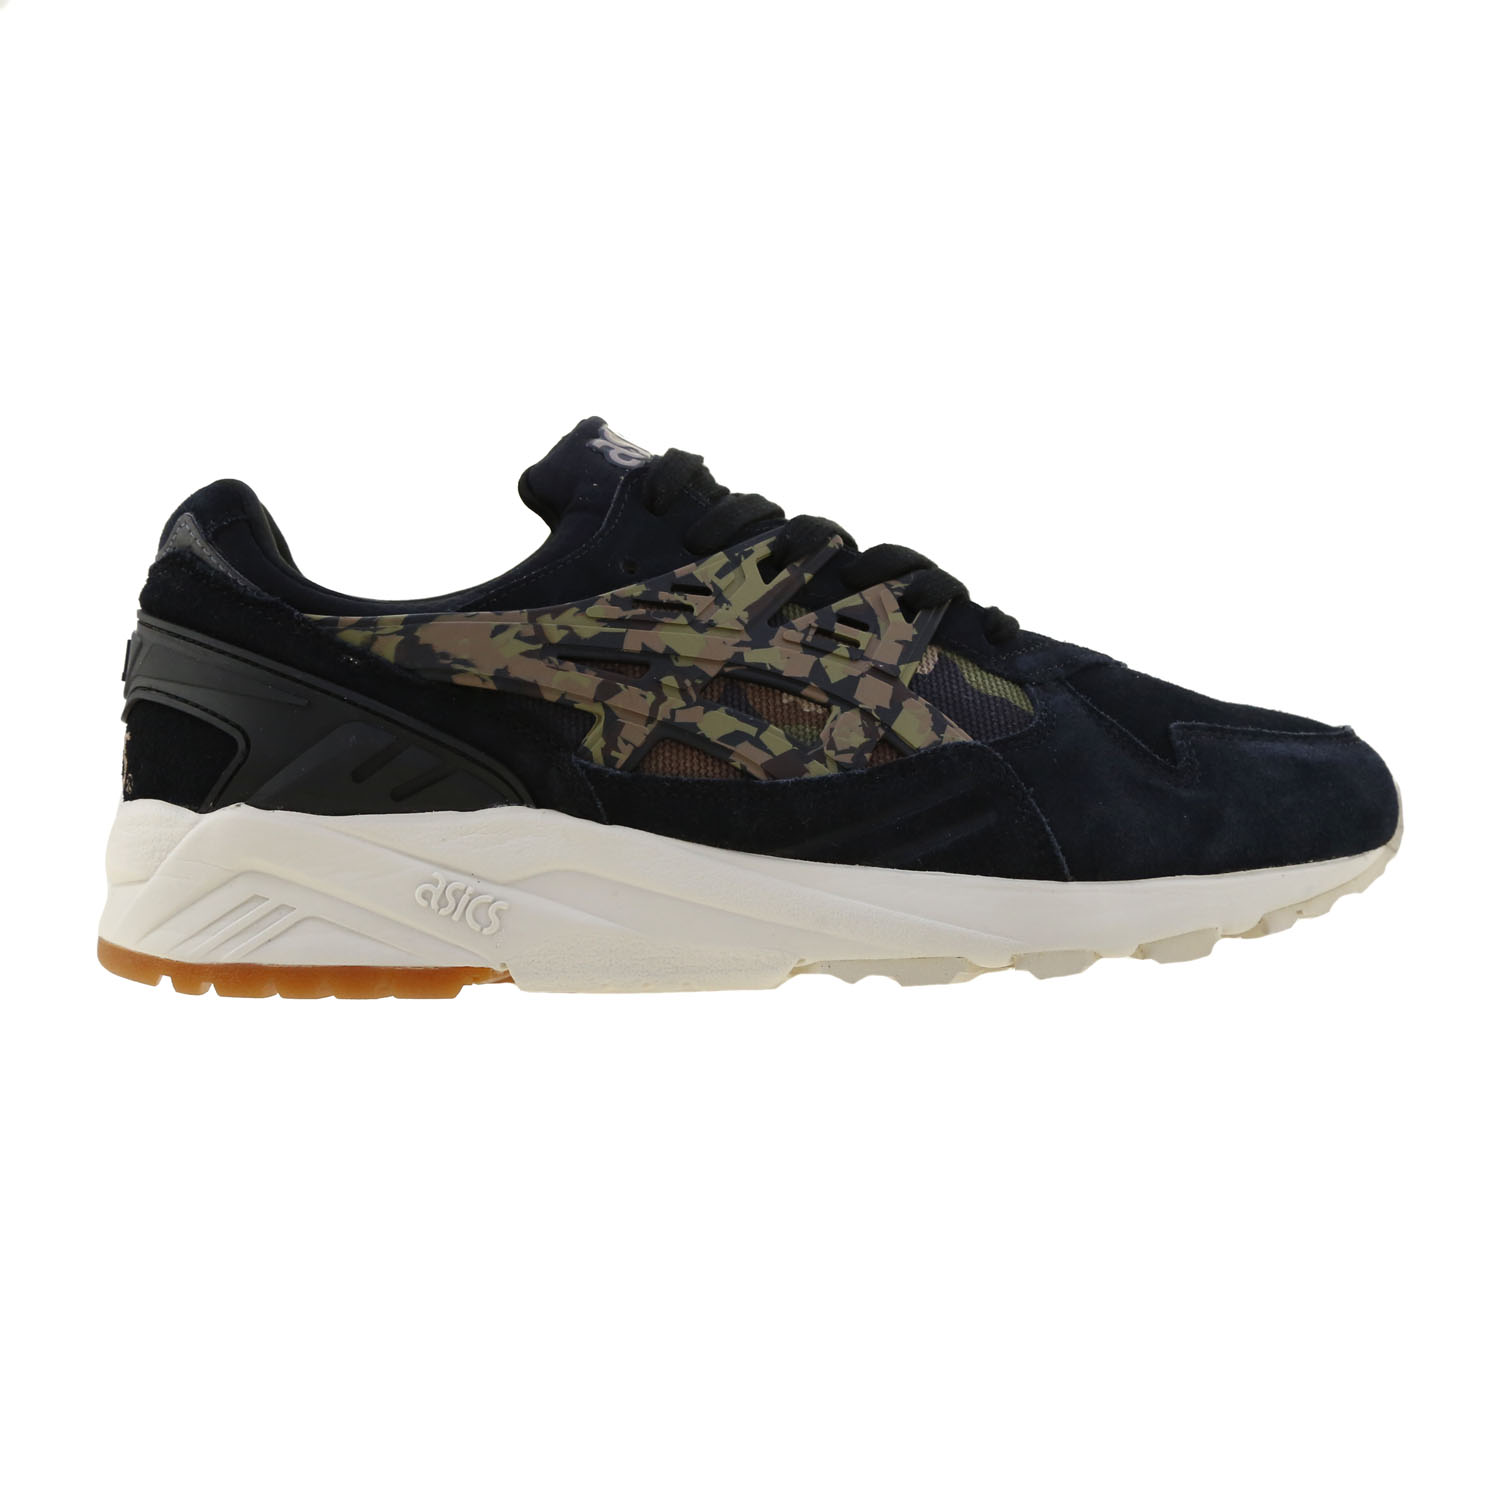 Asics Tiger Gel-Kayano Trainer M ( HL7C1-9086 ) παπούτσια    άνδρας   sneakers   trainers